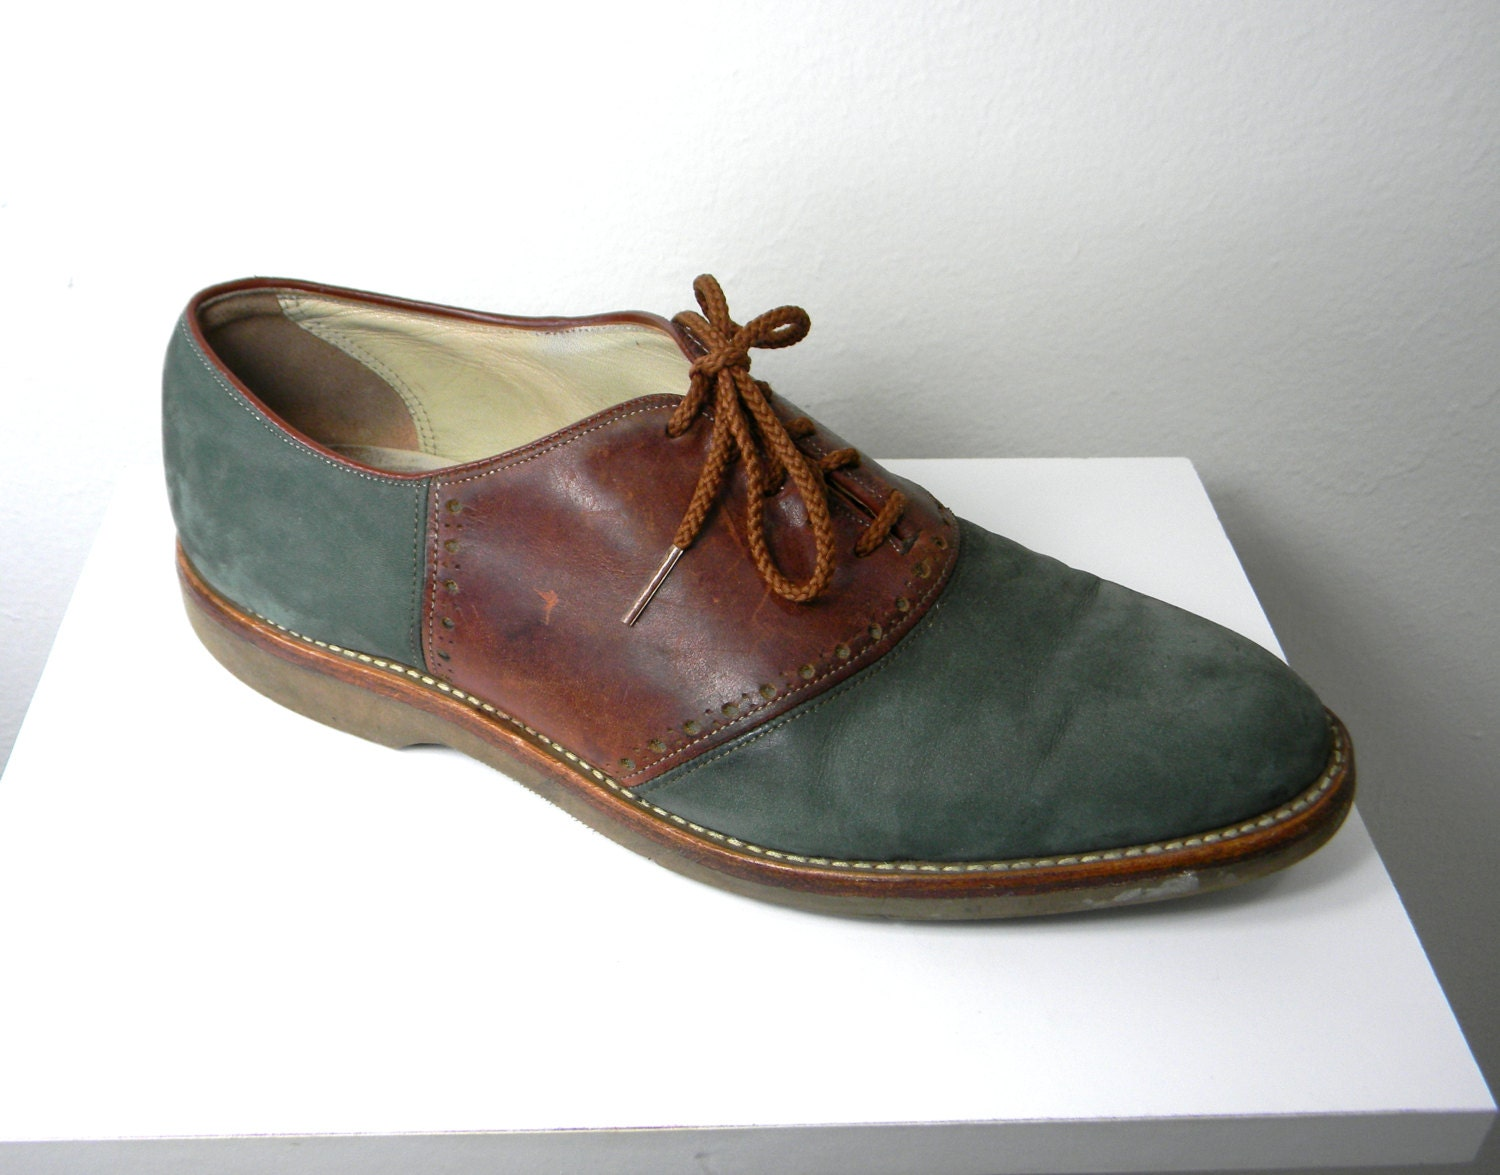 Teal Suede Shoes Uk